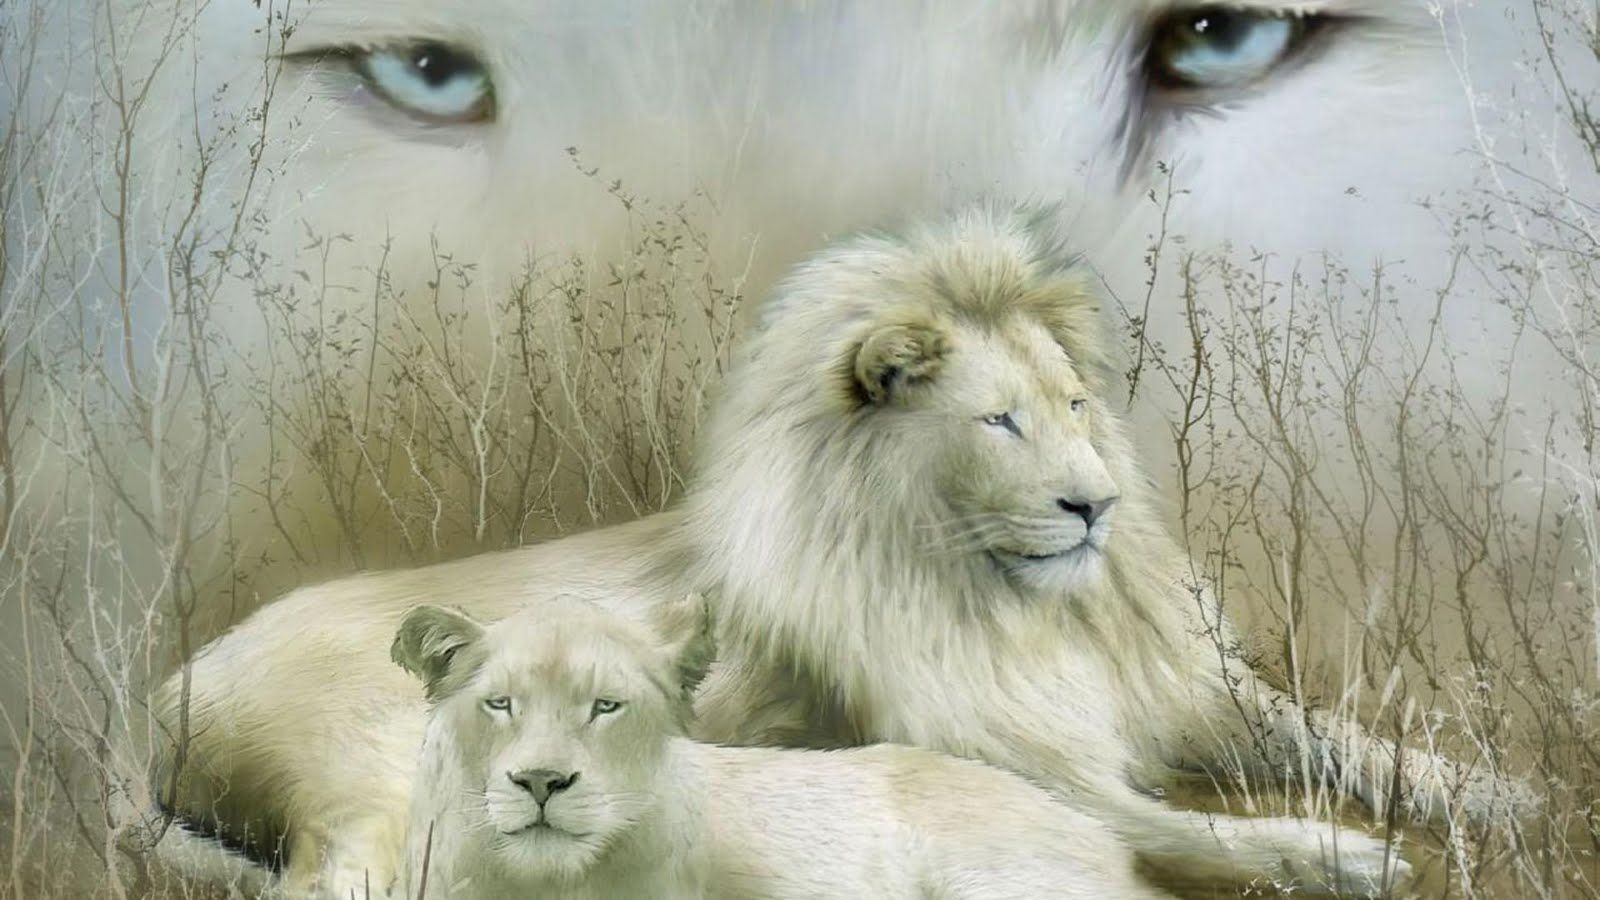 White Lion Hd Images Free Desk Wallpapers White Lion White Lion Images Lion Images